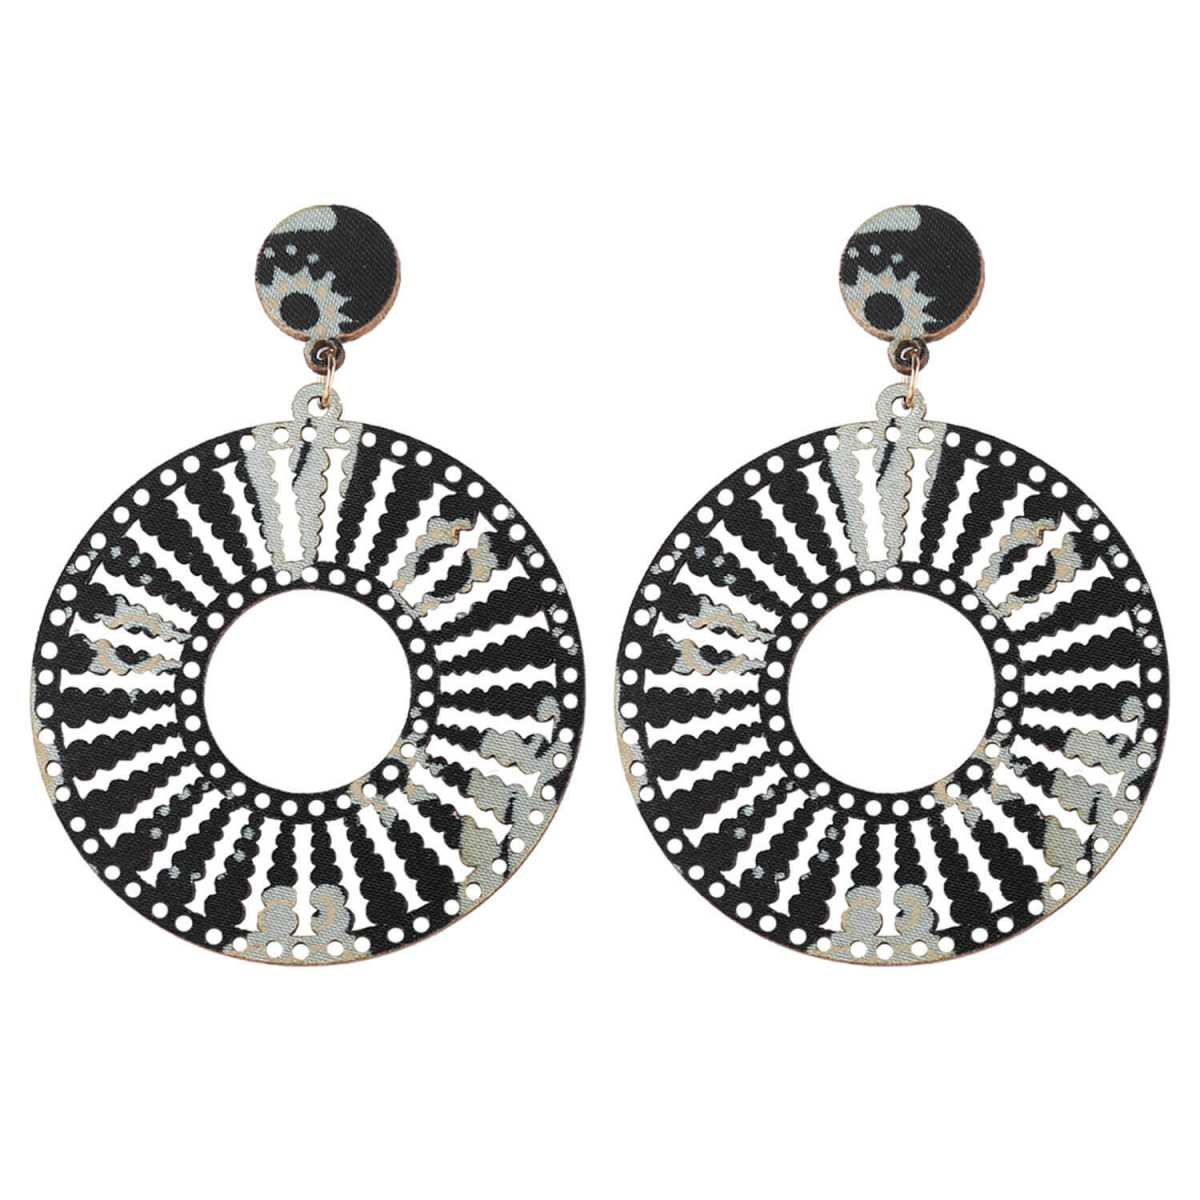 SILVER SHINE Designer Dangler Wooden Light Weight Earrings for Girls and Women.